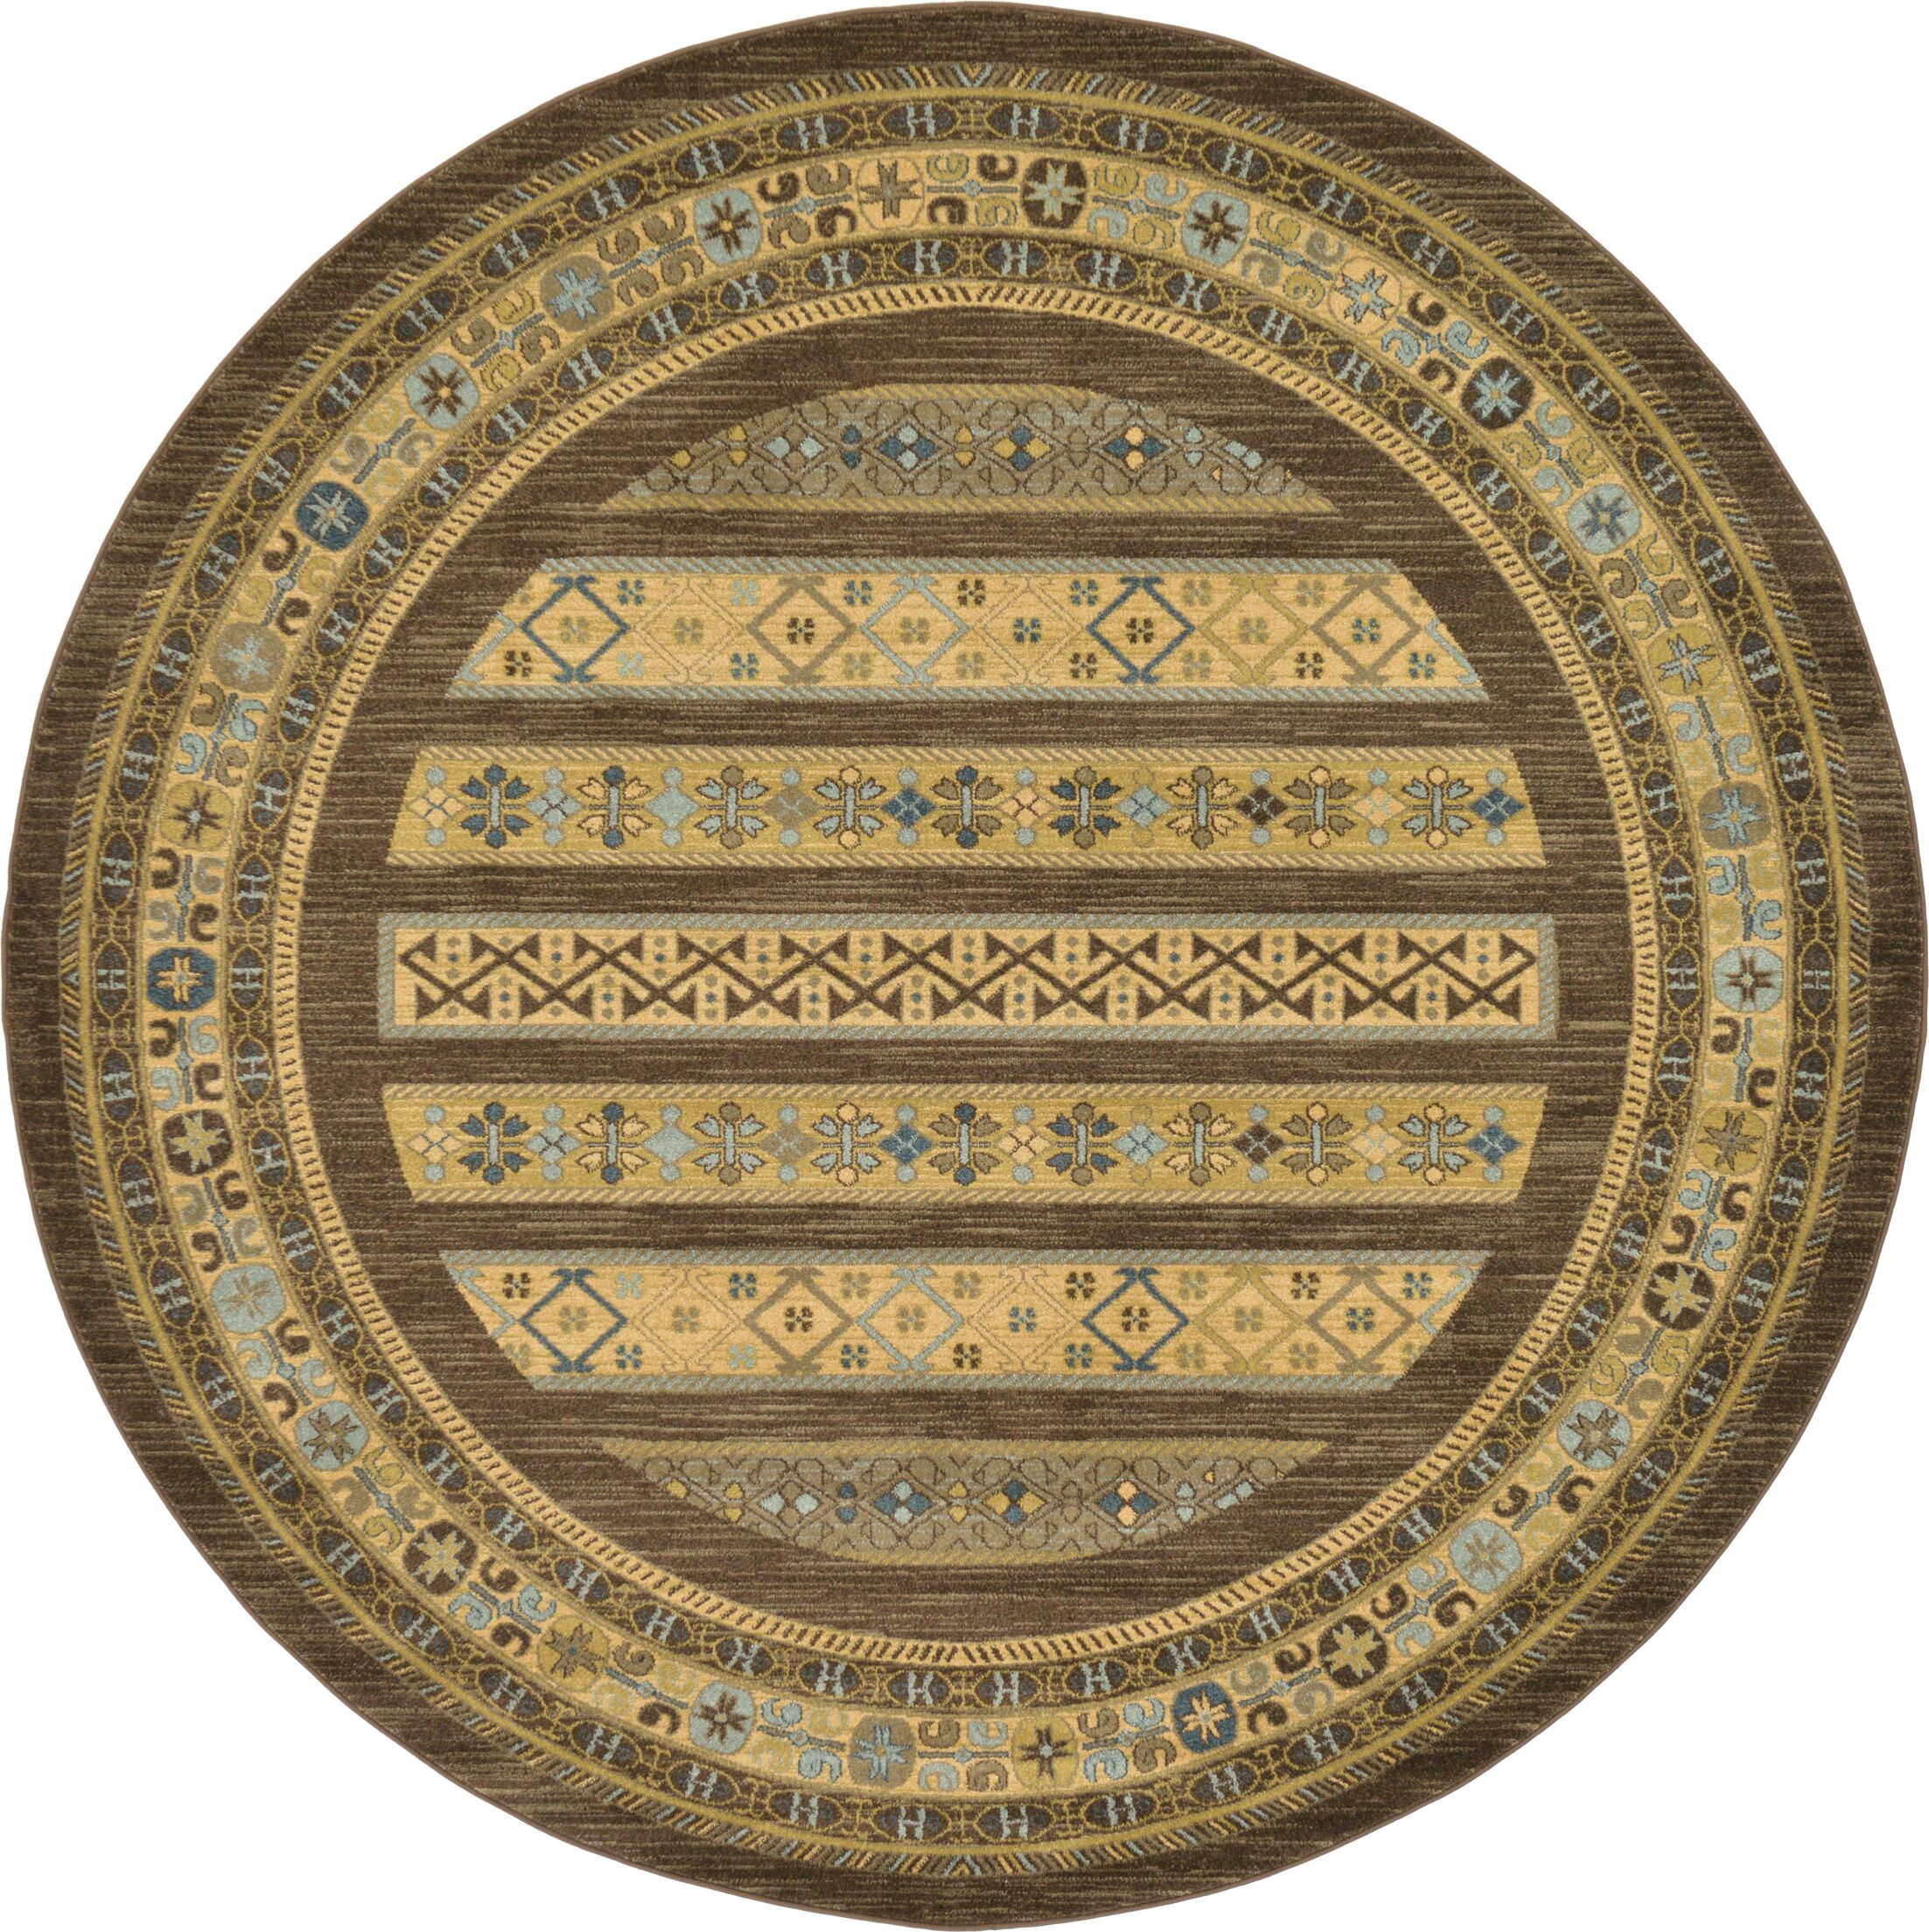 Foret Noire Brown Area Rug Rug Size: Round 8'